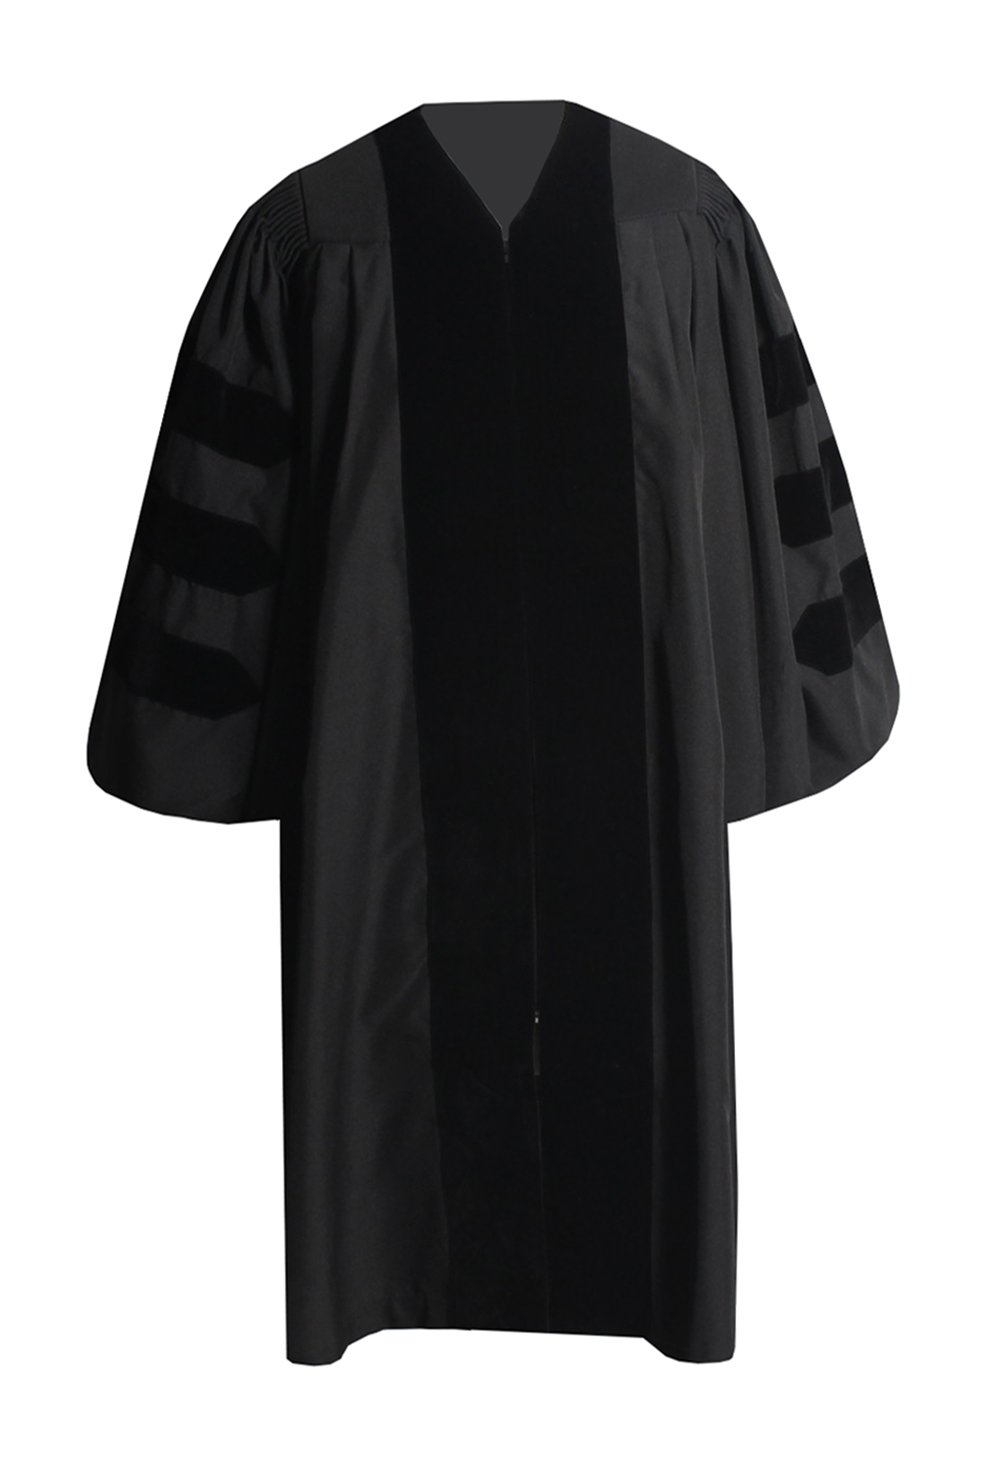 GraduationForYou Deluxe Doctoral Graduation Gown with Black Velvet